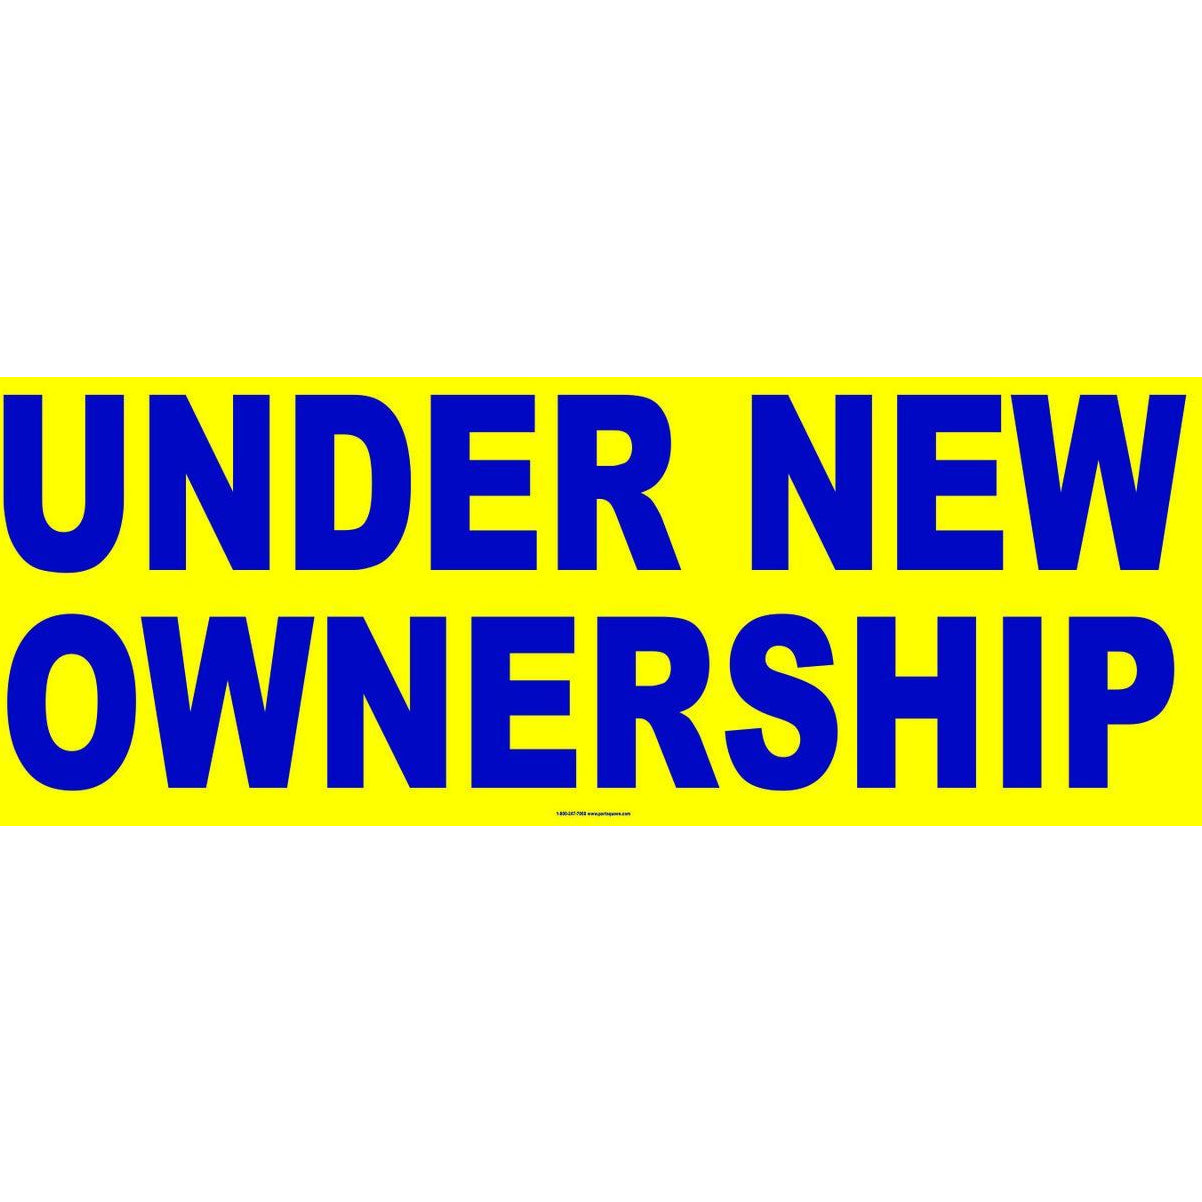 UNDER NEW OWNERSHIP # AB156